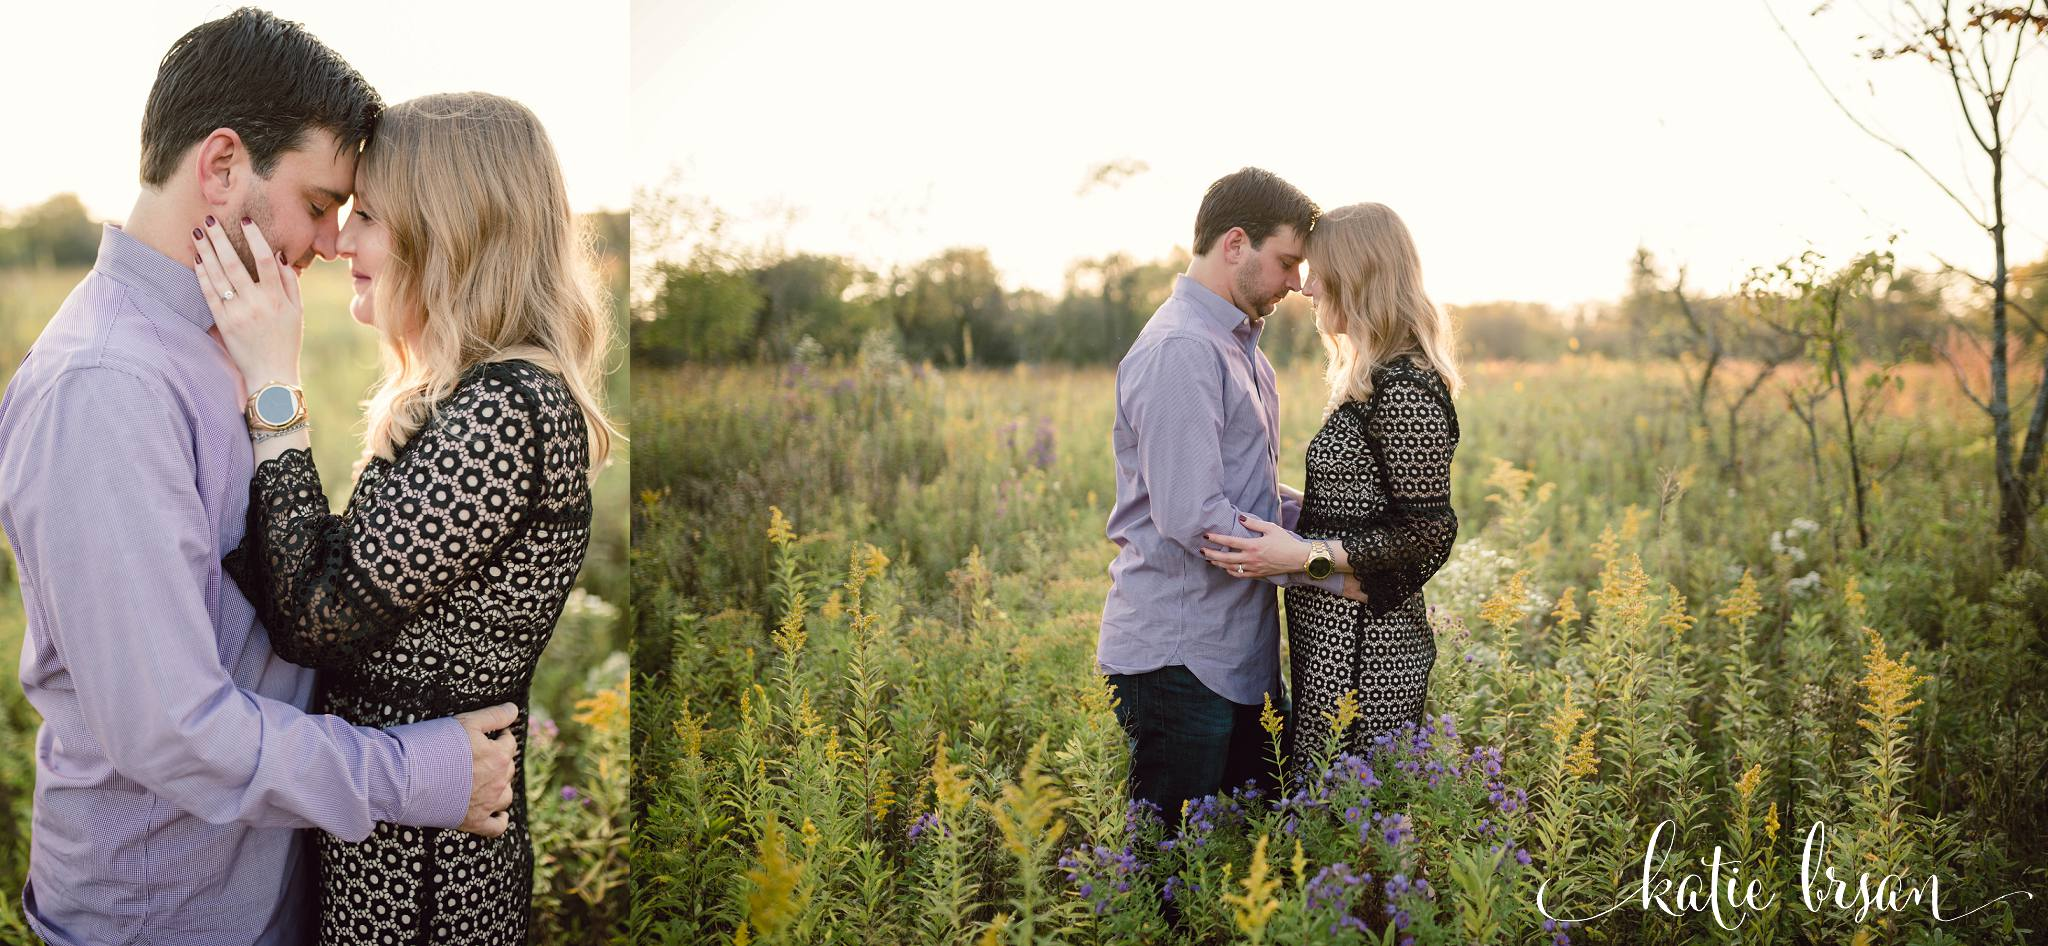 Mokena_EngagementSession_RuffledFeathers_Wedding_0957.jpg